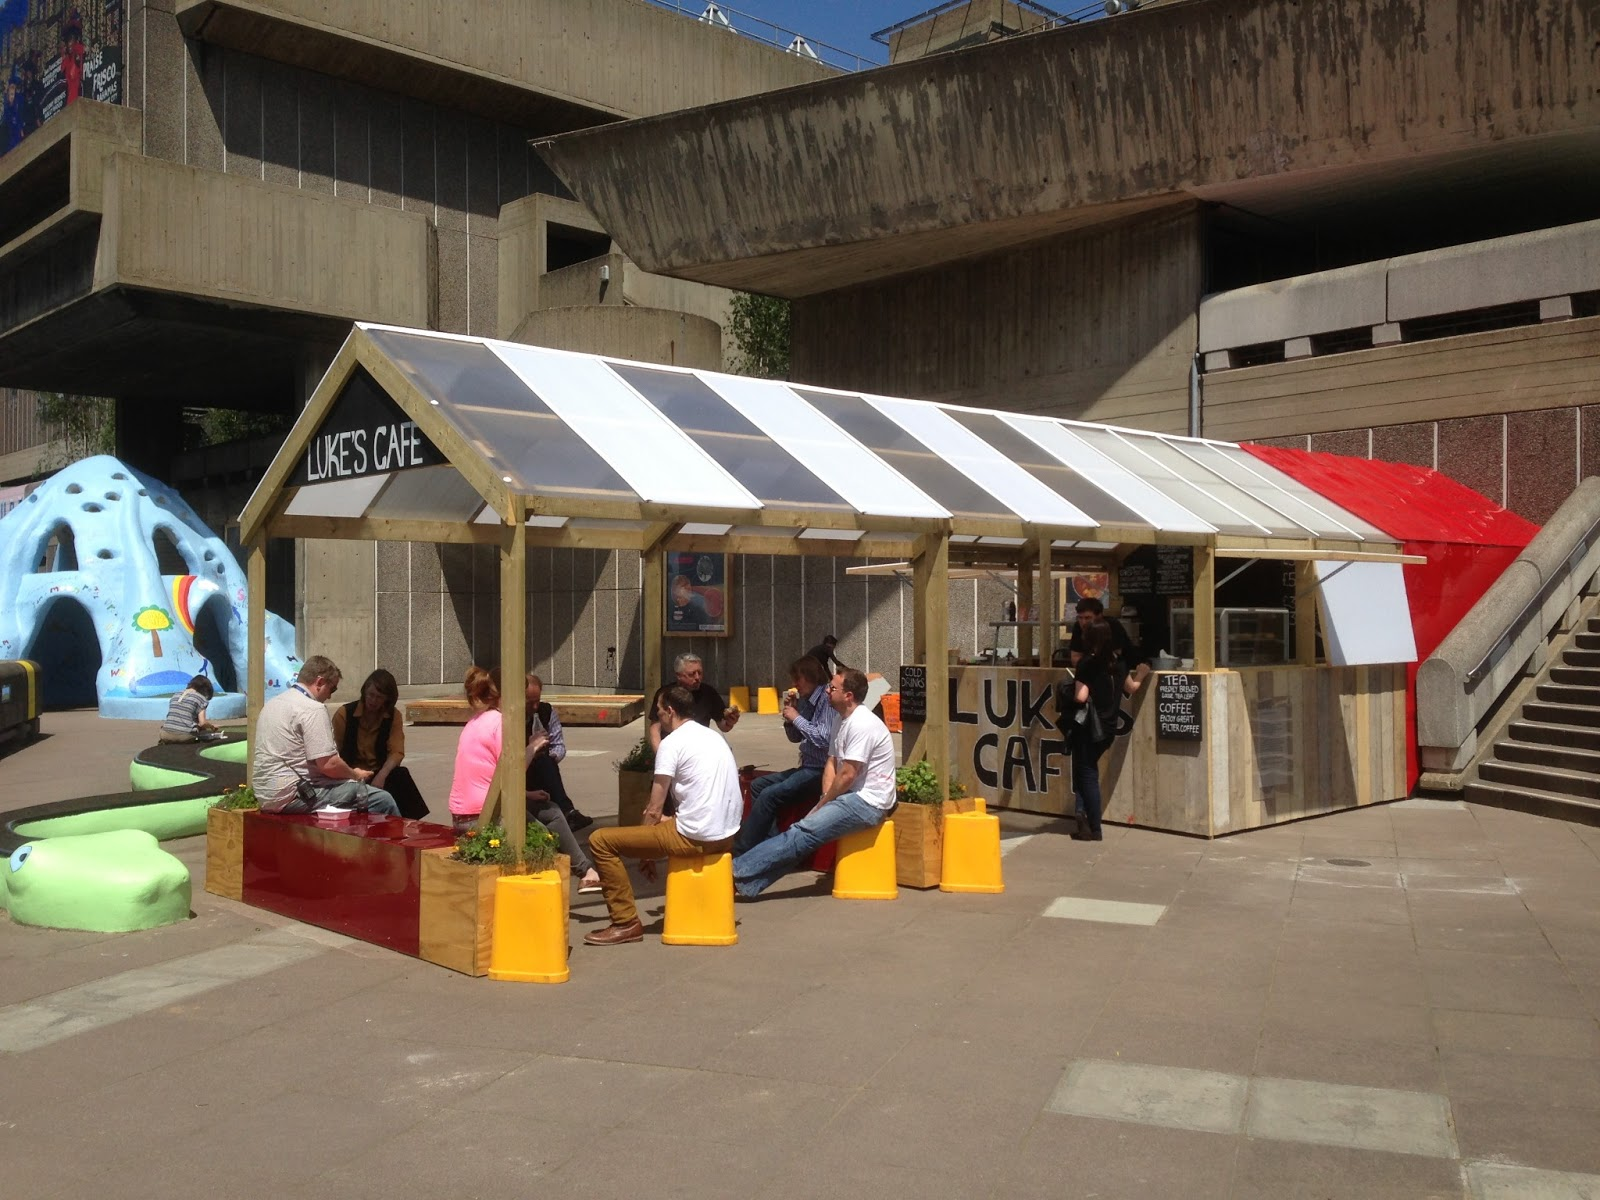 london pop ups luke 39 s cafe summer pop up next to the hayward gallery on the south bank. Black Bedroom Furniture Sets. Home Design Ideas